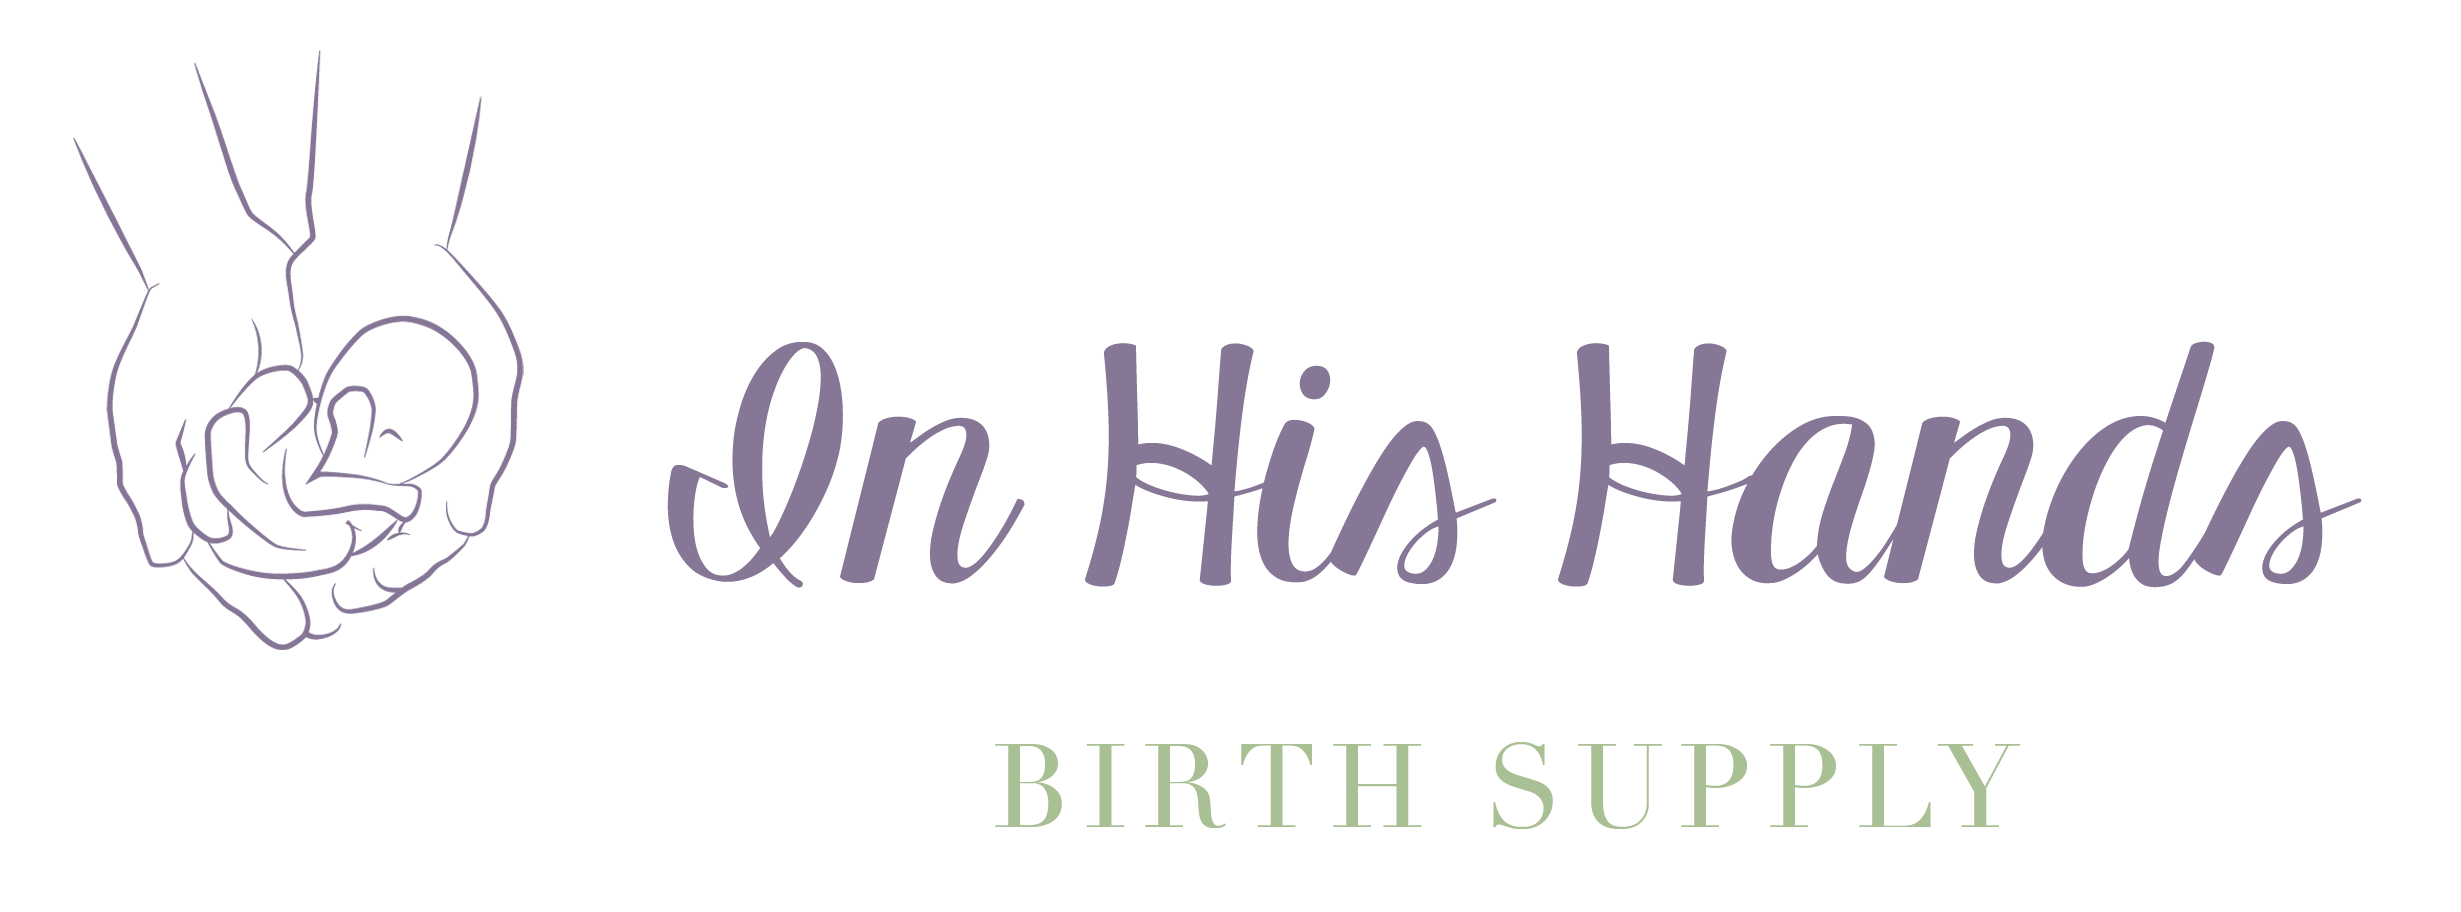 In-His-Hands-Birth-Supply-Logo-OKC-Central-Oklahoma-birth-supplies-birth-tub-rental-homebirth-resources.jpg